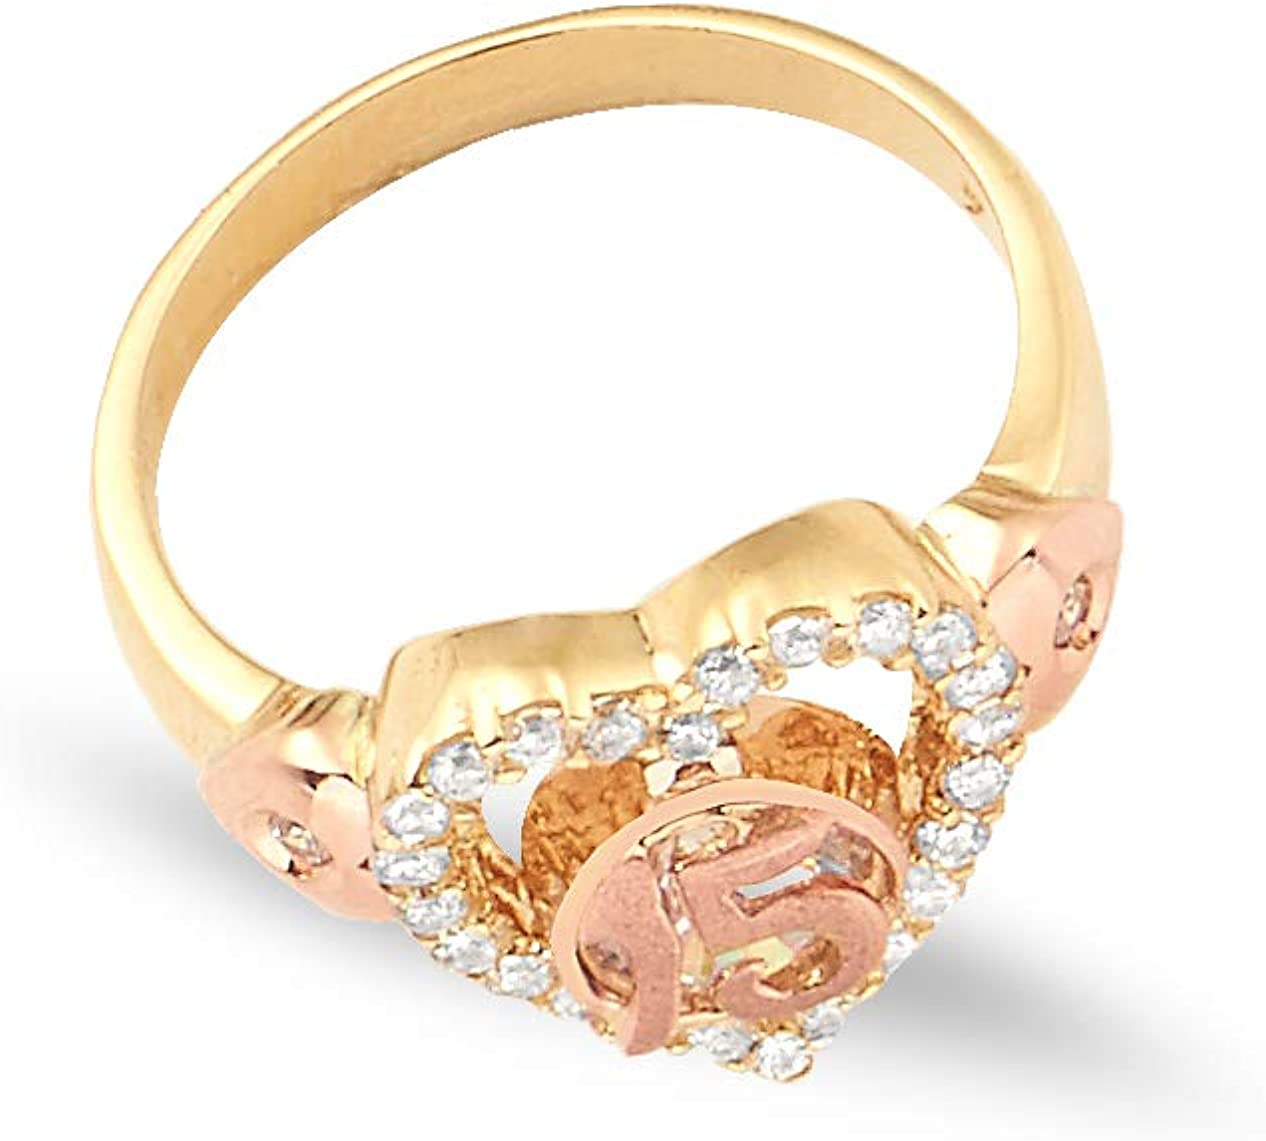 Tone 15 Anos Big Hearts with CZ Stones Quinceanera Ring Available in Sizes 5-9 LoveBling 14k Two